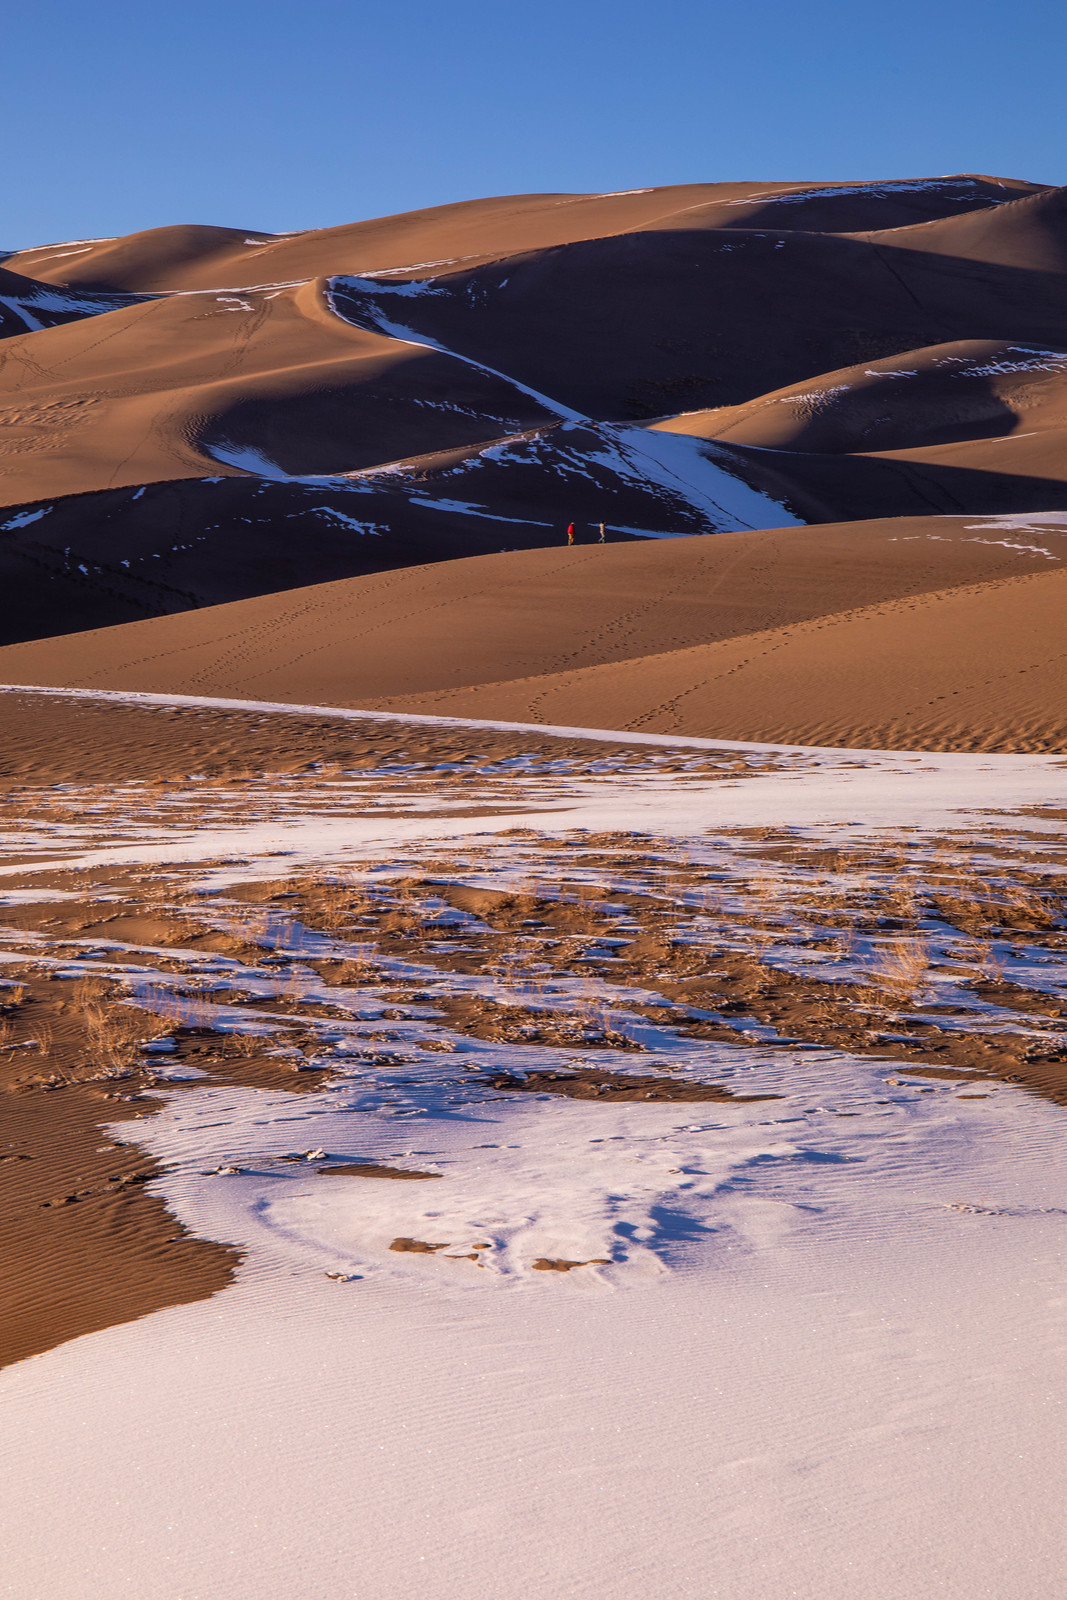 12.29. Great Sand Dunes National Park